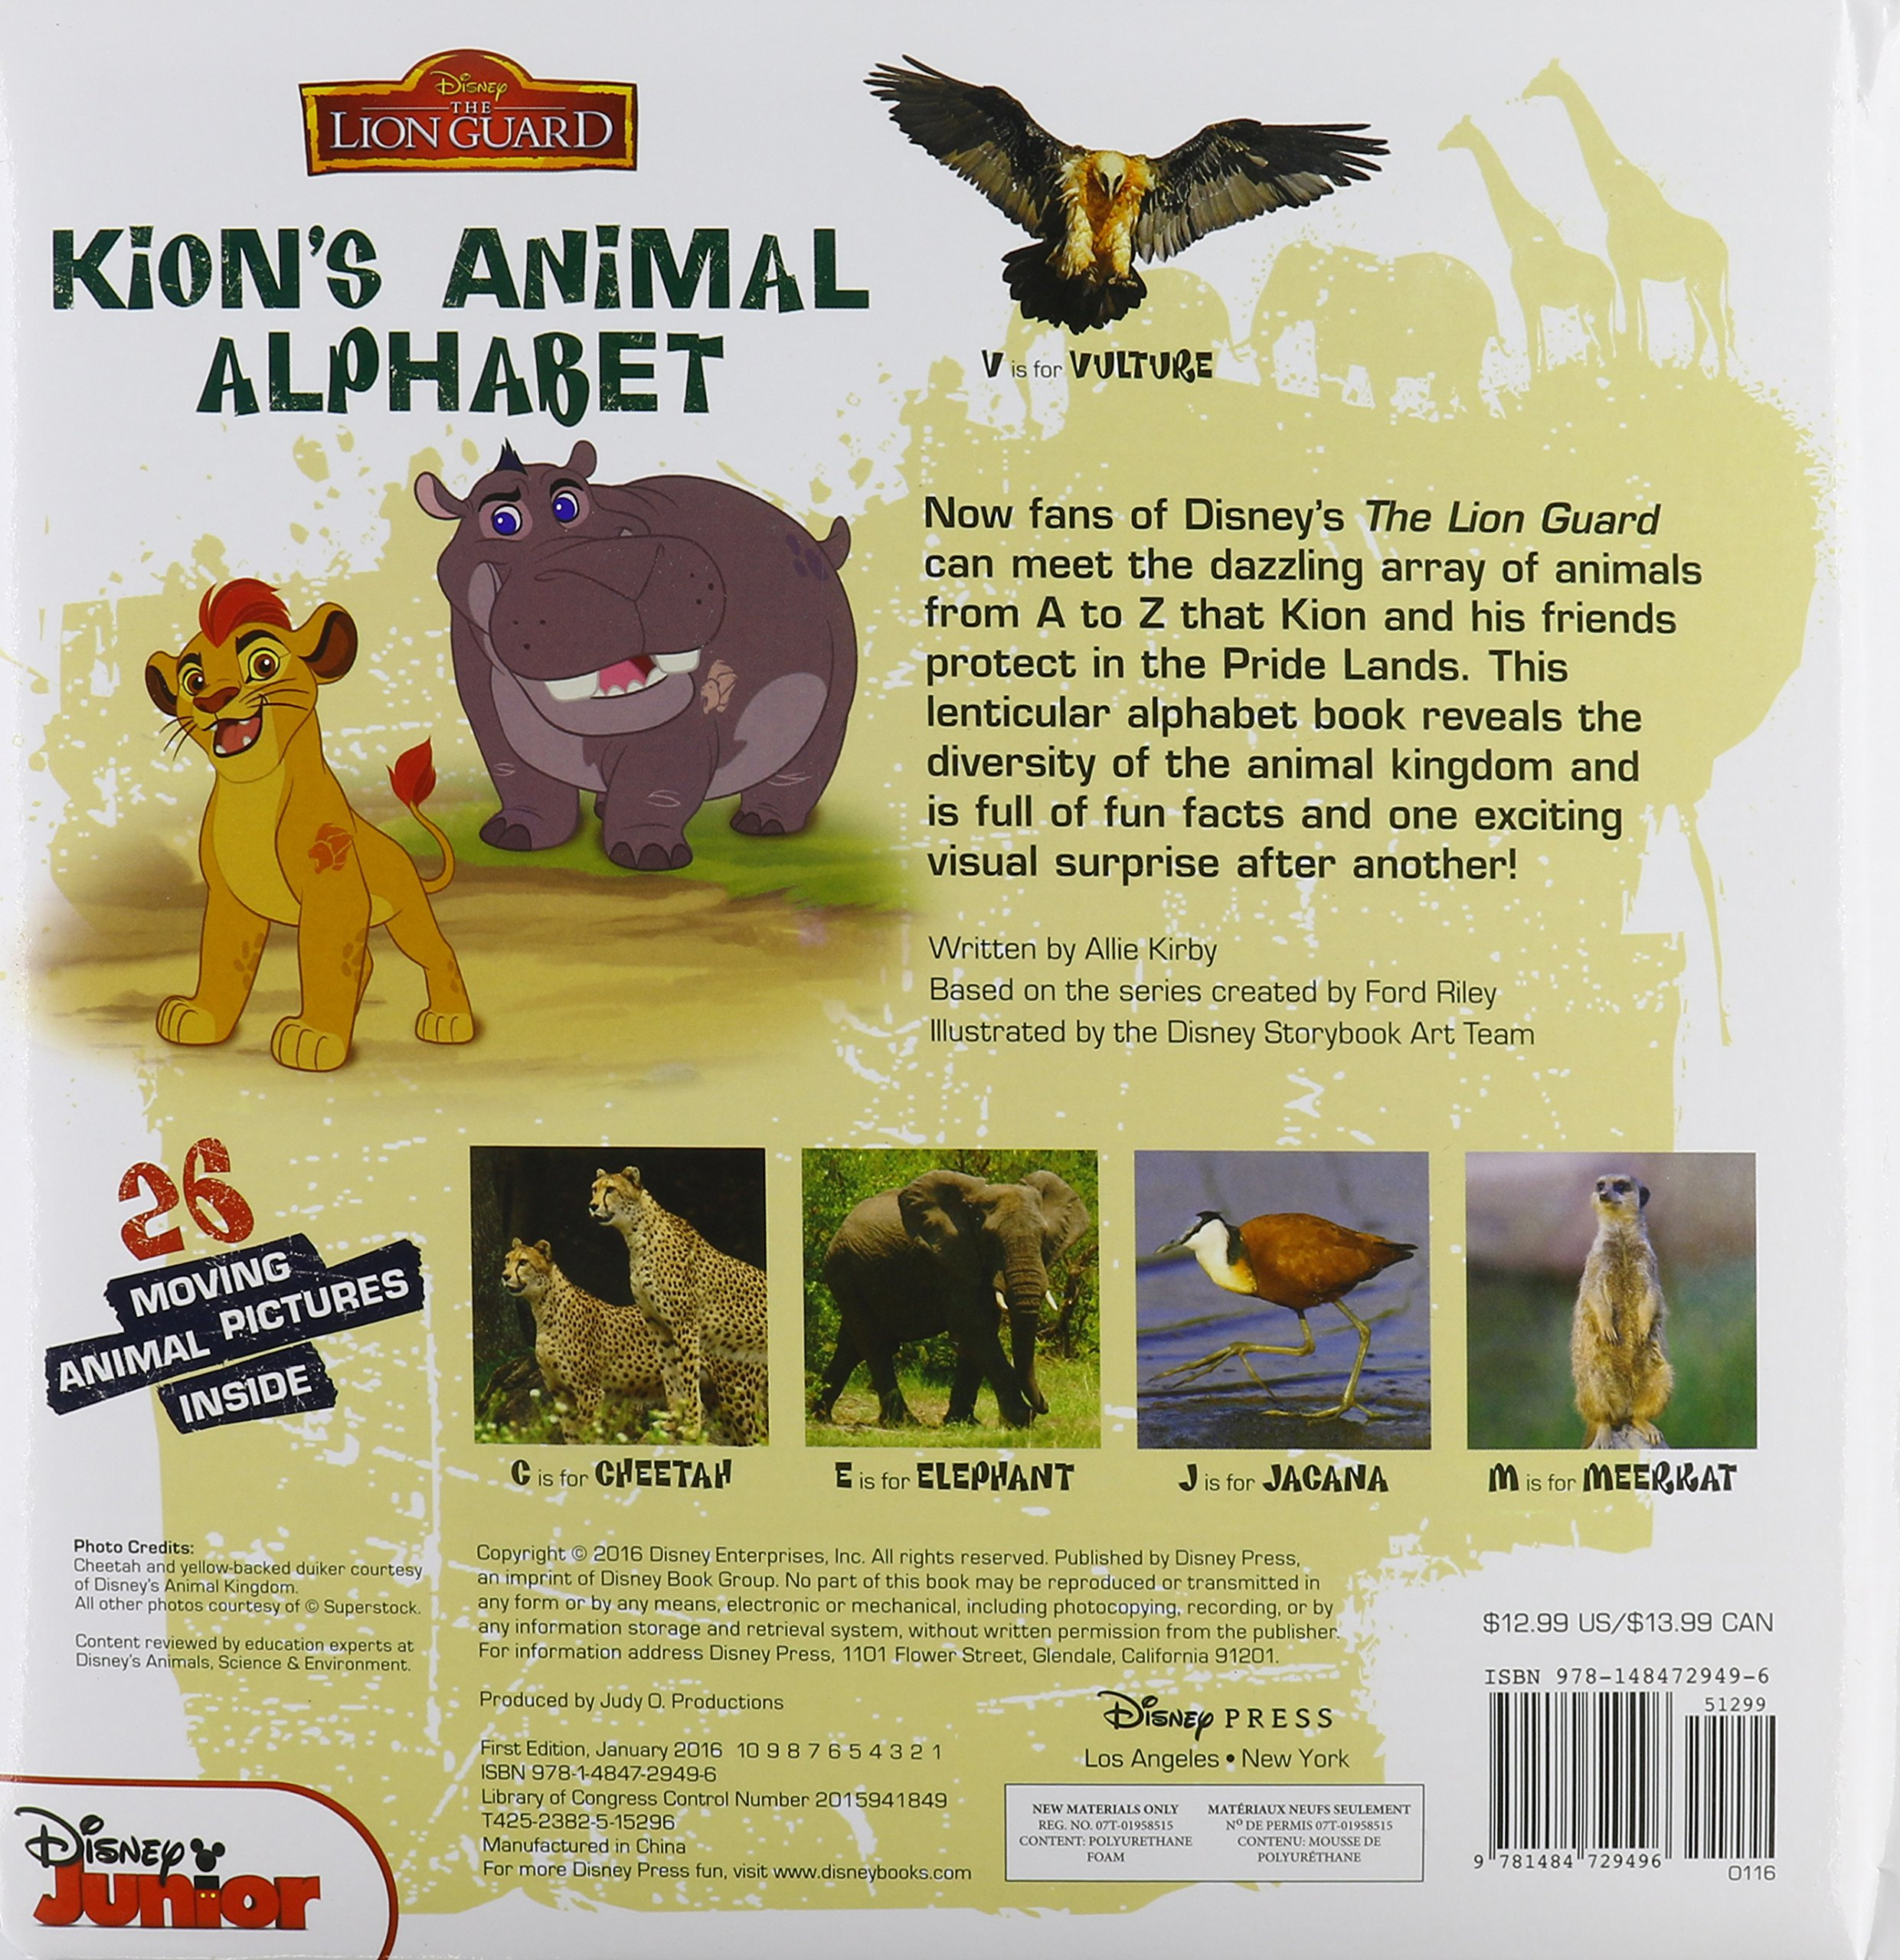 The Lion Guard Kion's Animal Alphabet